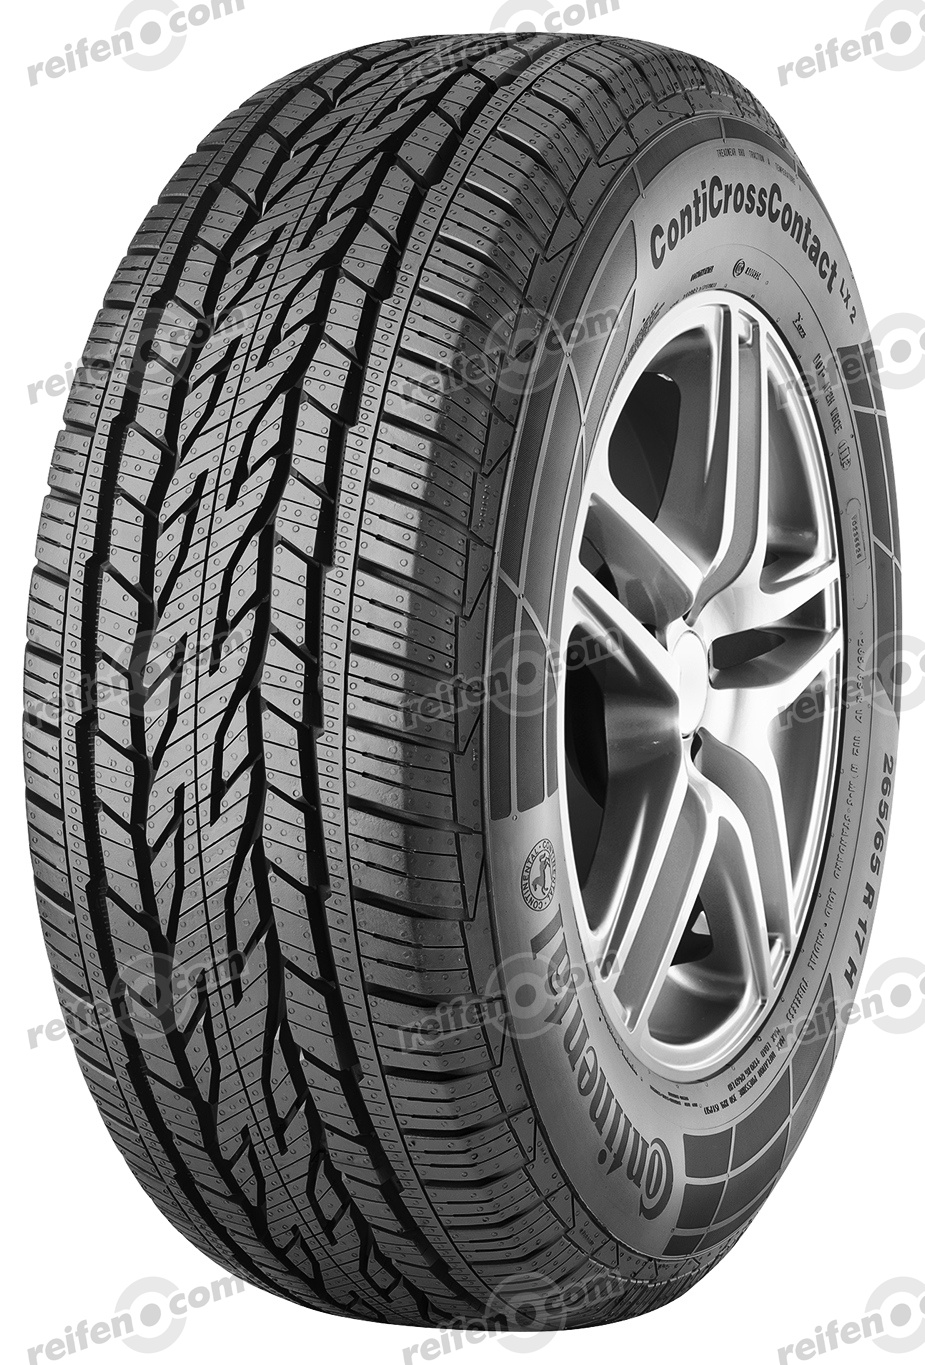 225/70 R16 103H CrossContact  LX 2 FR BSW  CrossContact  LX 2 FR BSW